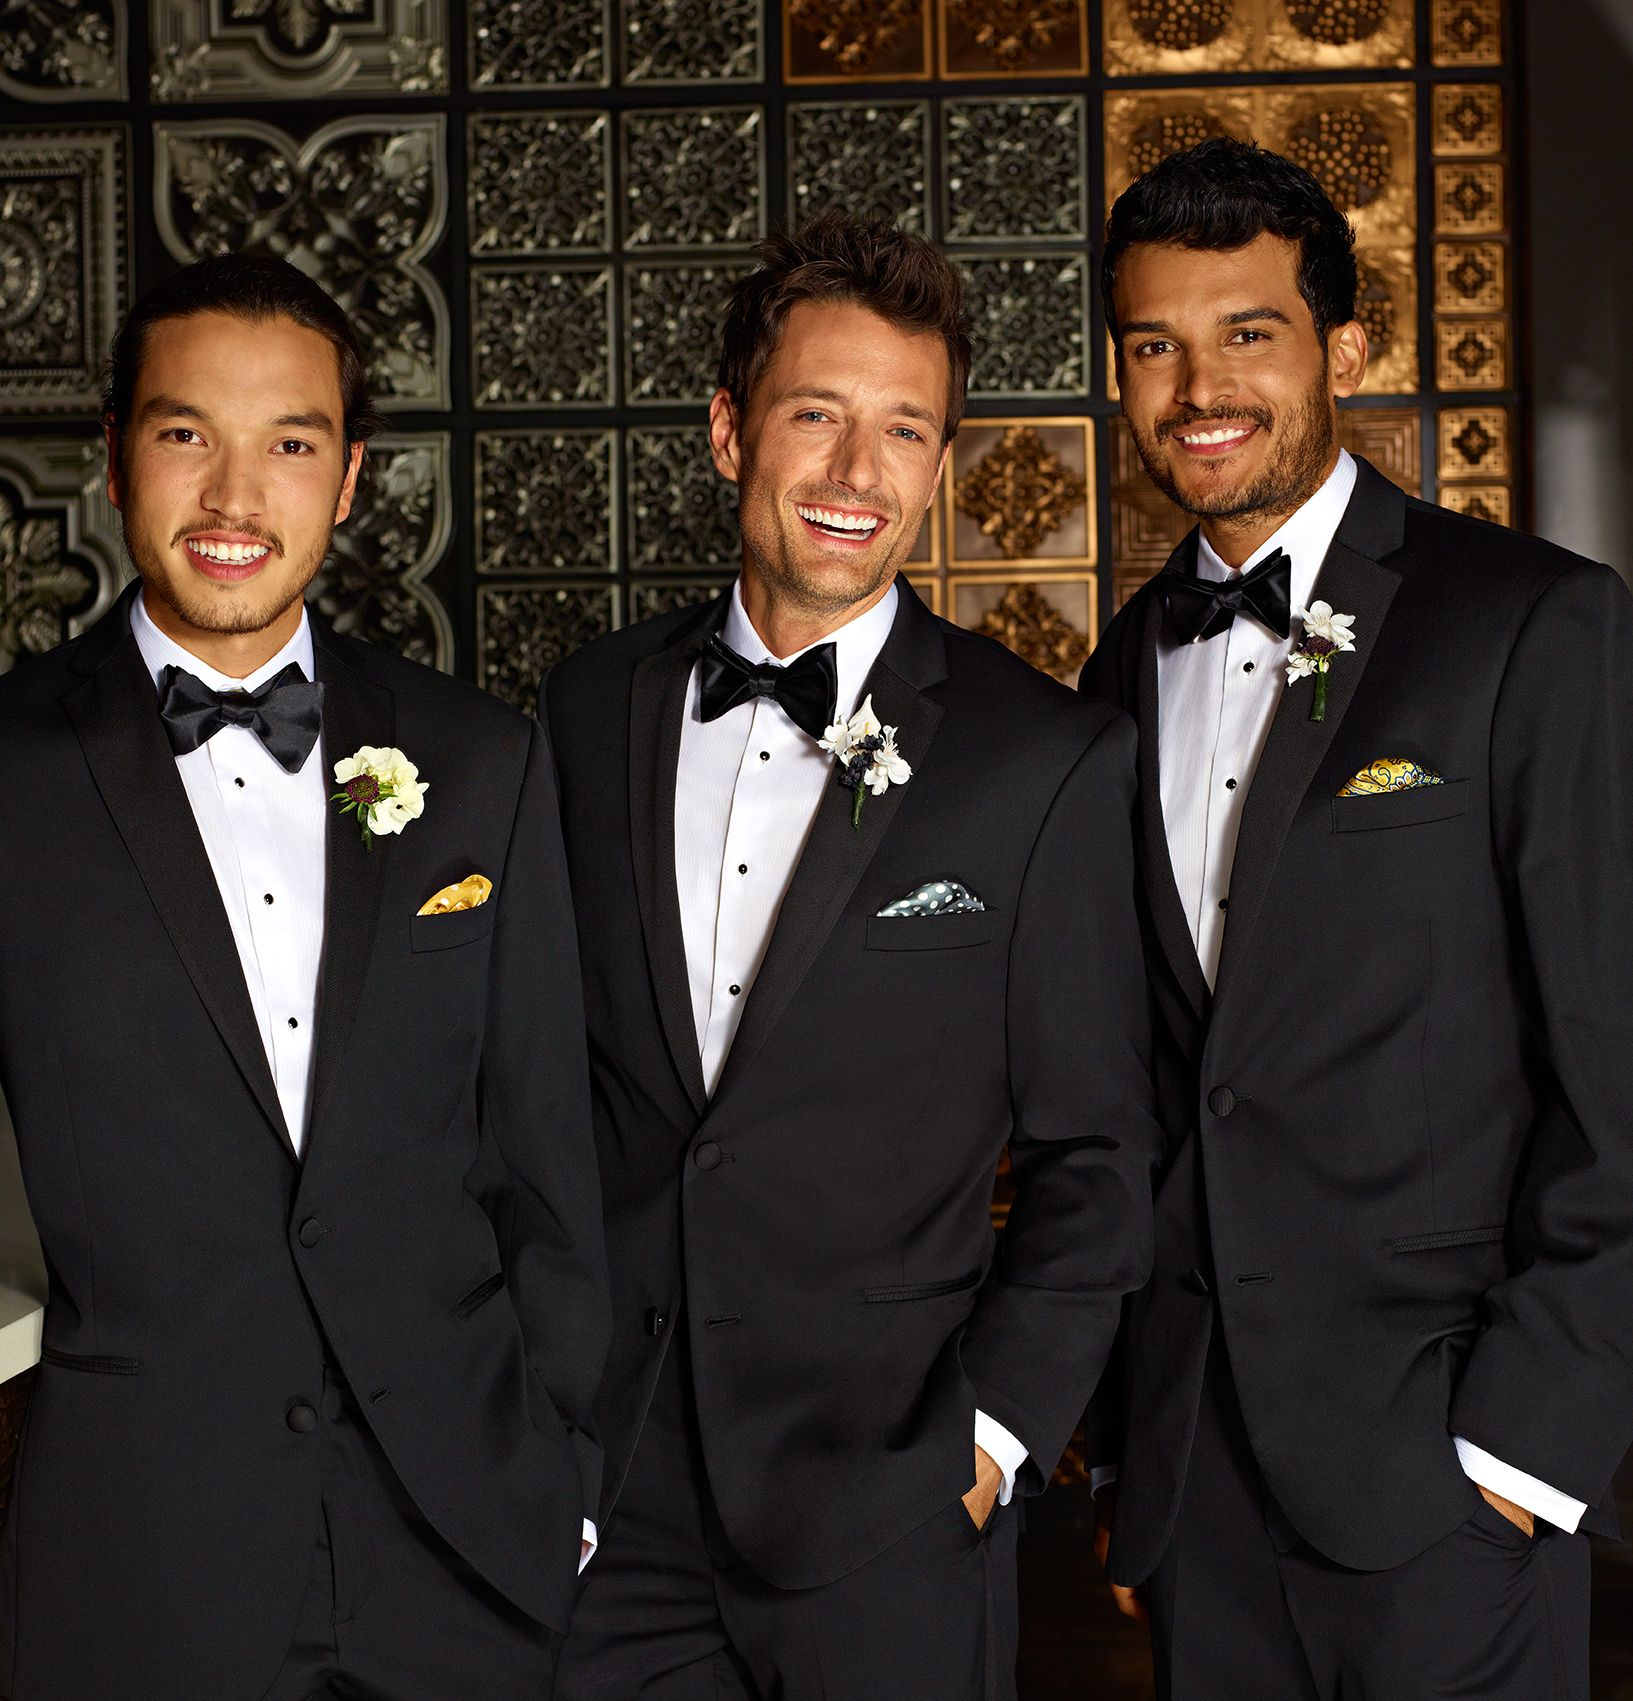 50fc56cbdadc6 Make the groom stand out with small details like a different colored tie or pocket  square.